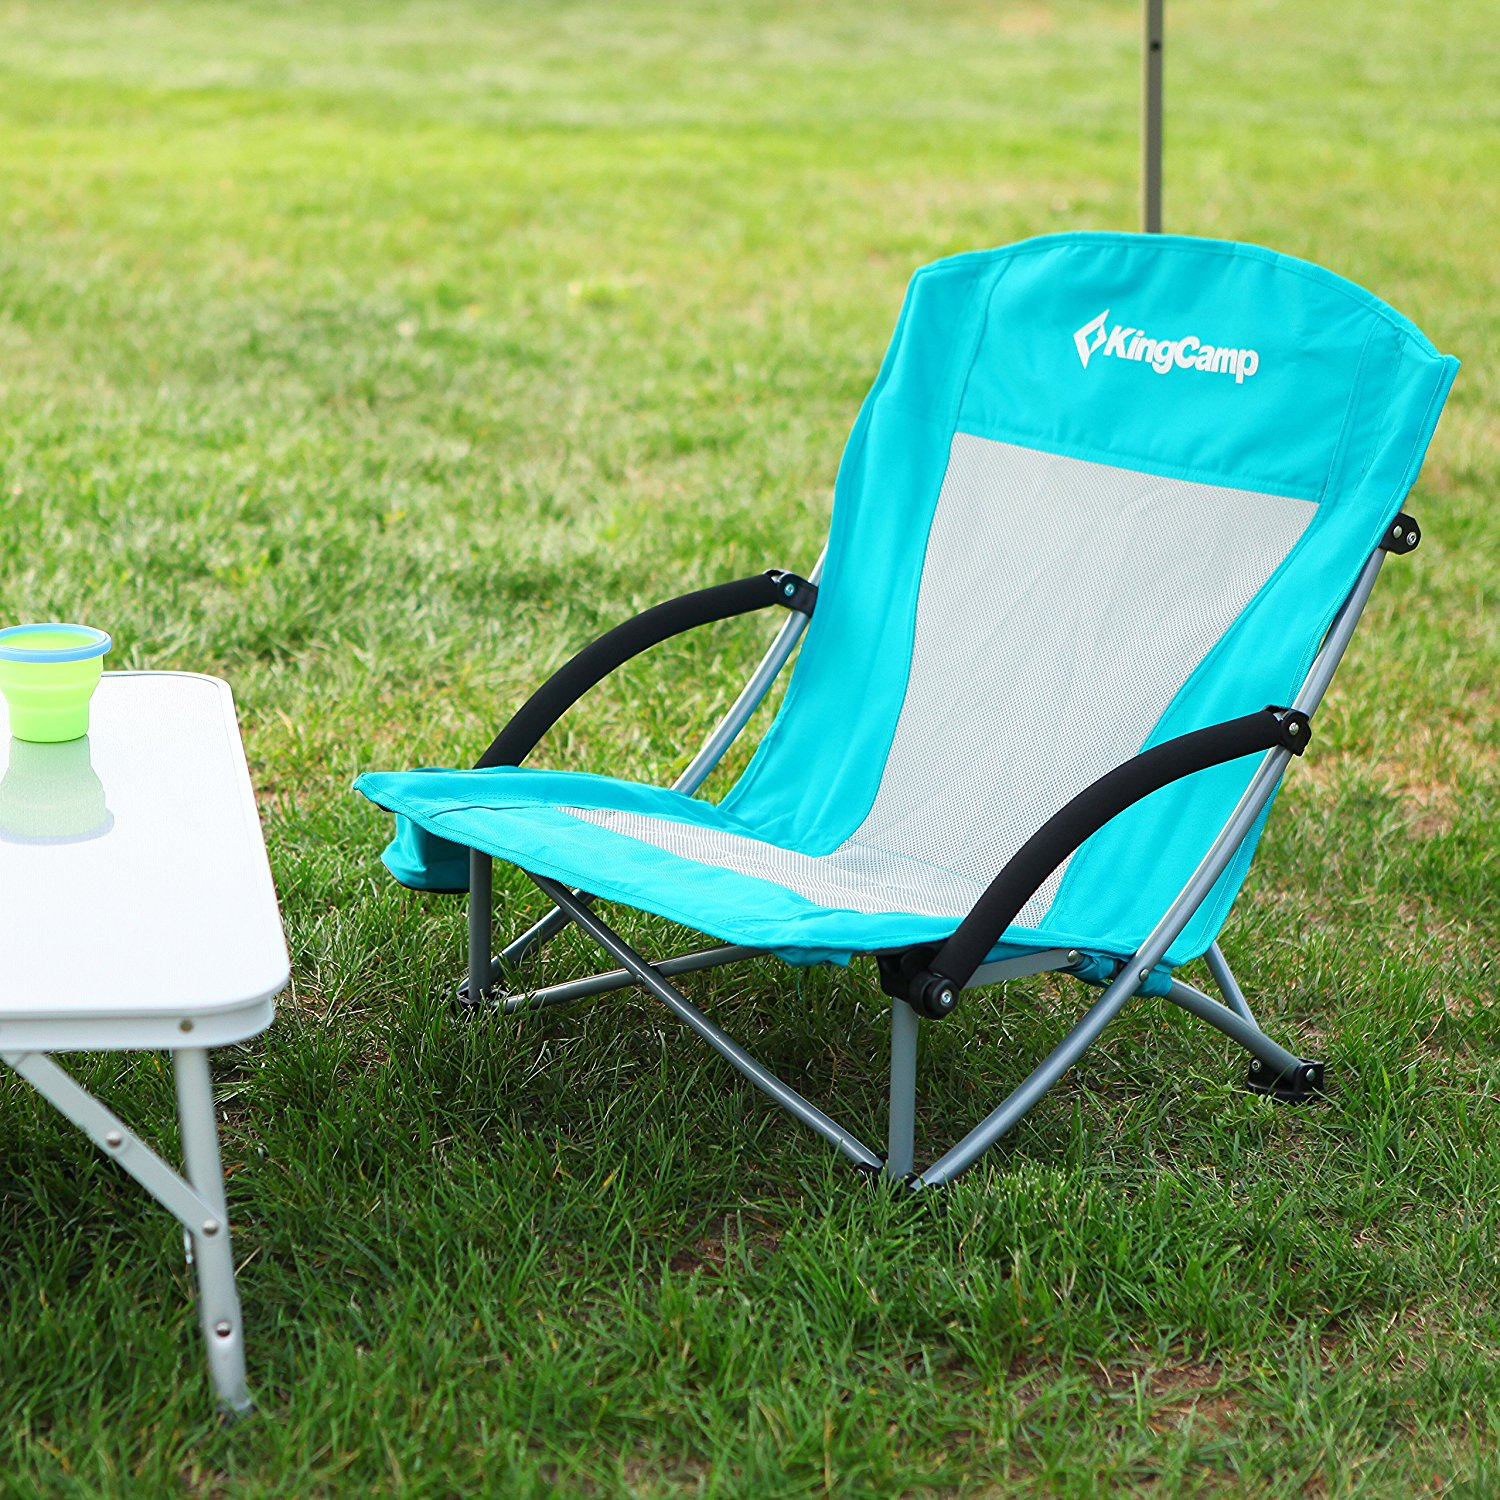 Low Folding Beach Chair Low Profile Folding Beach Chair With Mesh Back And Cup Holder 300